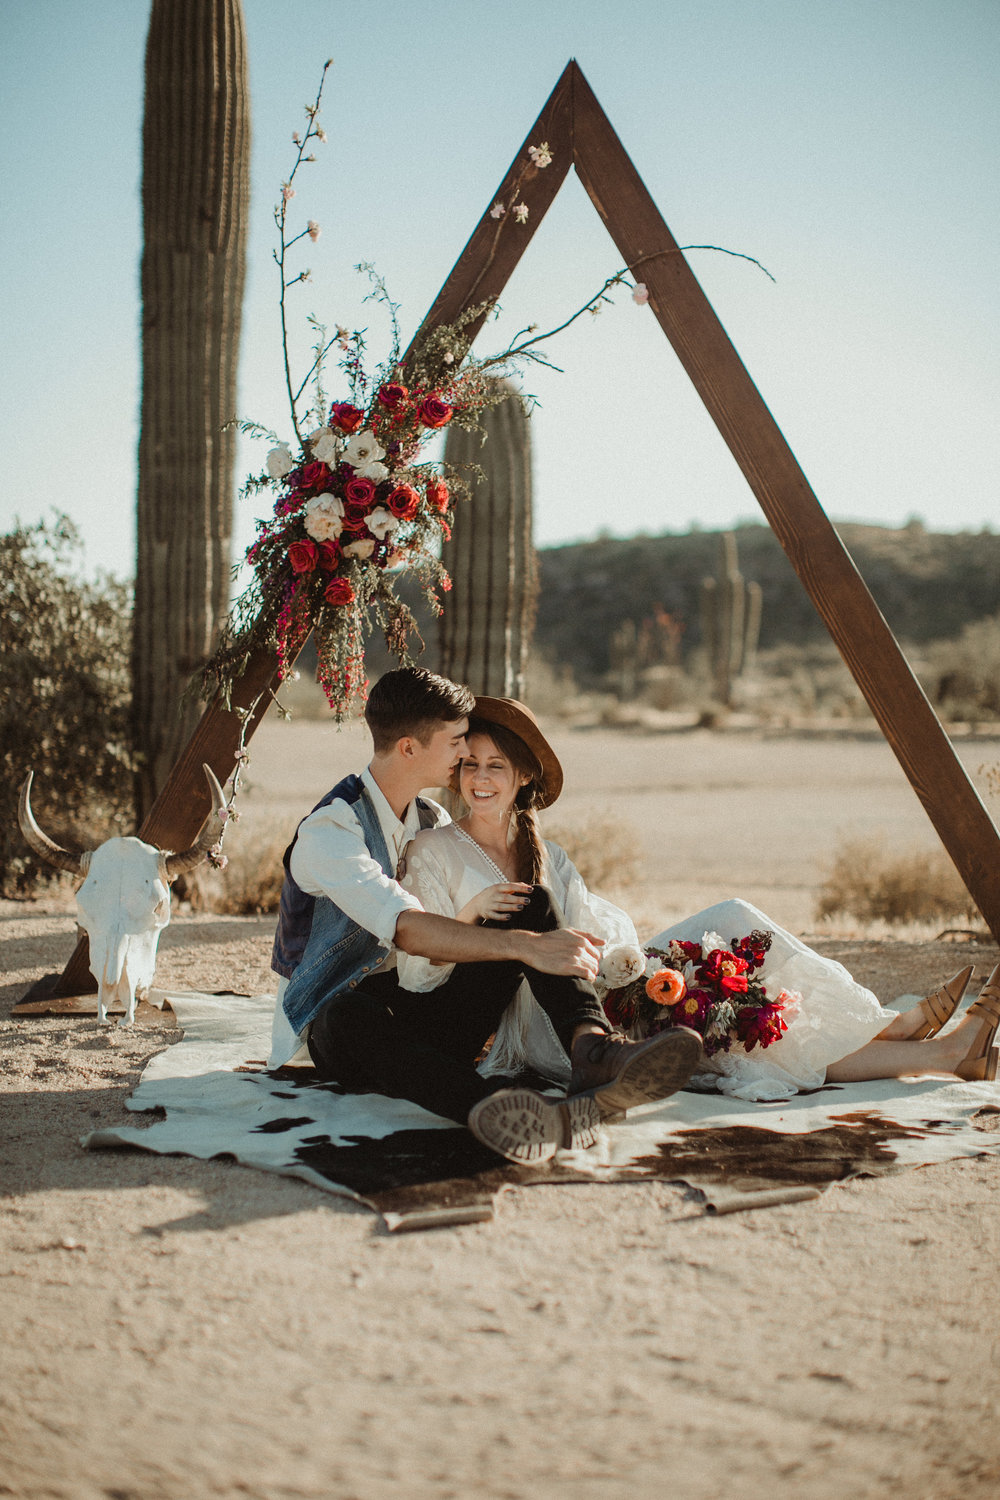 Desert Boho Vagabond Inspiration Shoot with Tremaine Ranch, From the daisies, Noir Floral, Phoenix, Arizona - Wedding & Event Rentals, Vintage, Specialty39.jpg